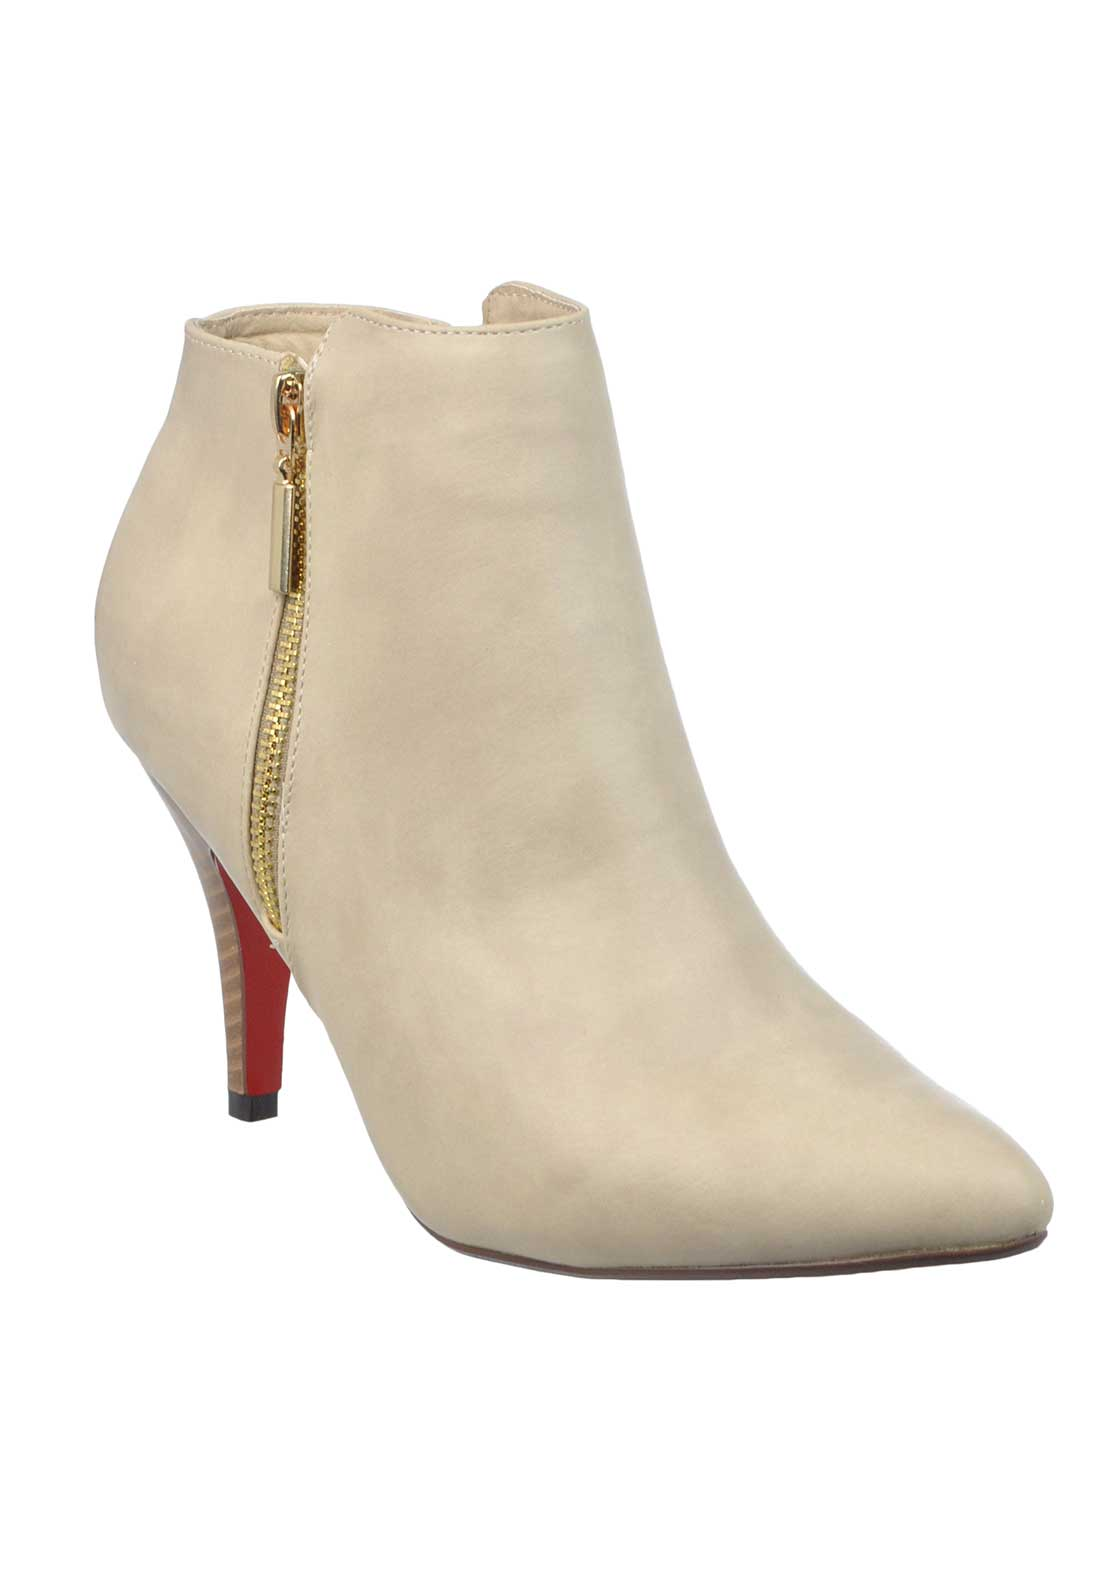 Kate Appleby Castle Hope Faux Leather Pointed Toe Heeled Ankle Boots, Cream